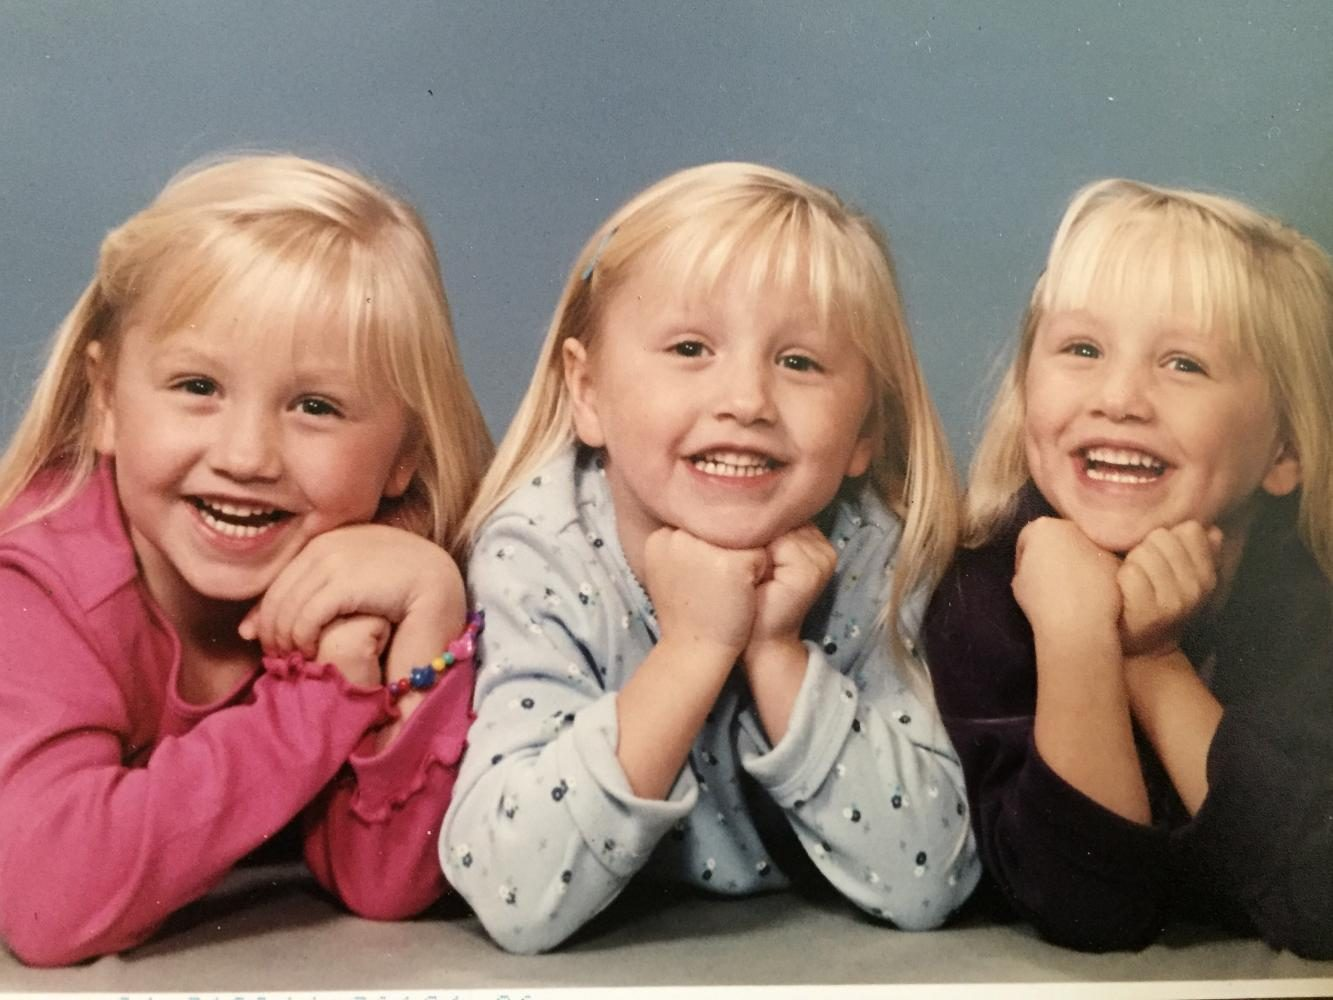 growing up being a triplet can be hard but brings you closer